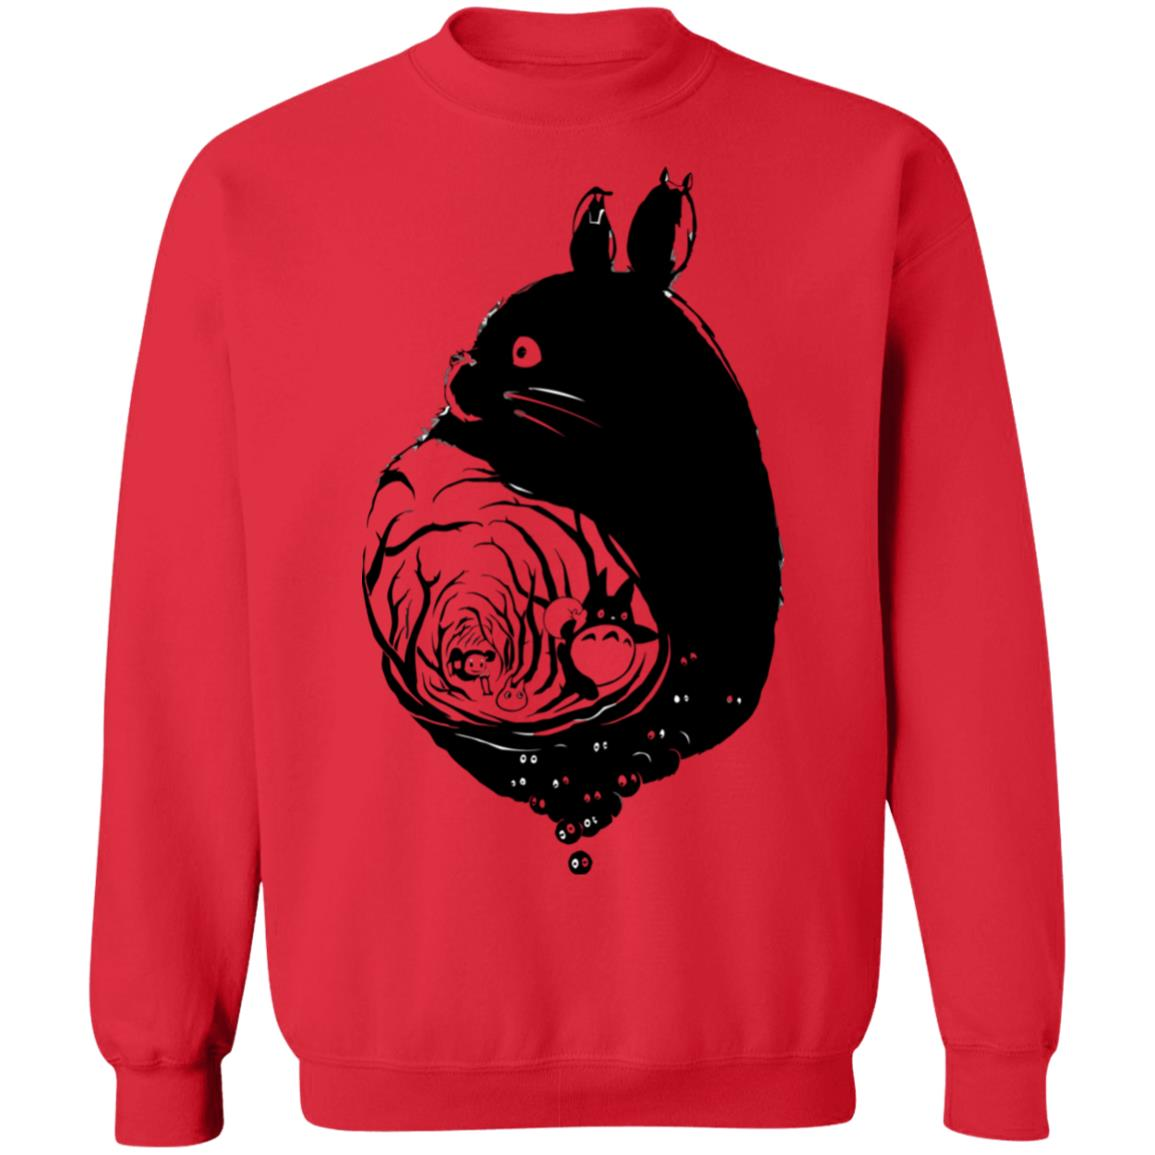 My Neighbor Totoro – Into the Forest Sweatshirt Unisex